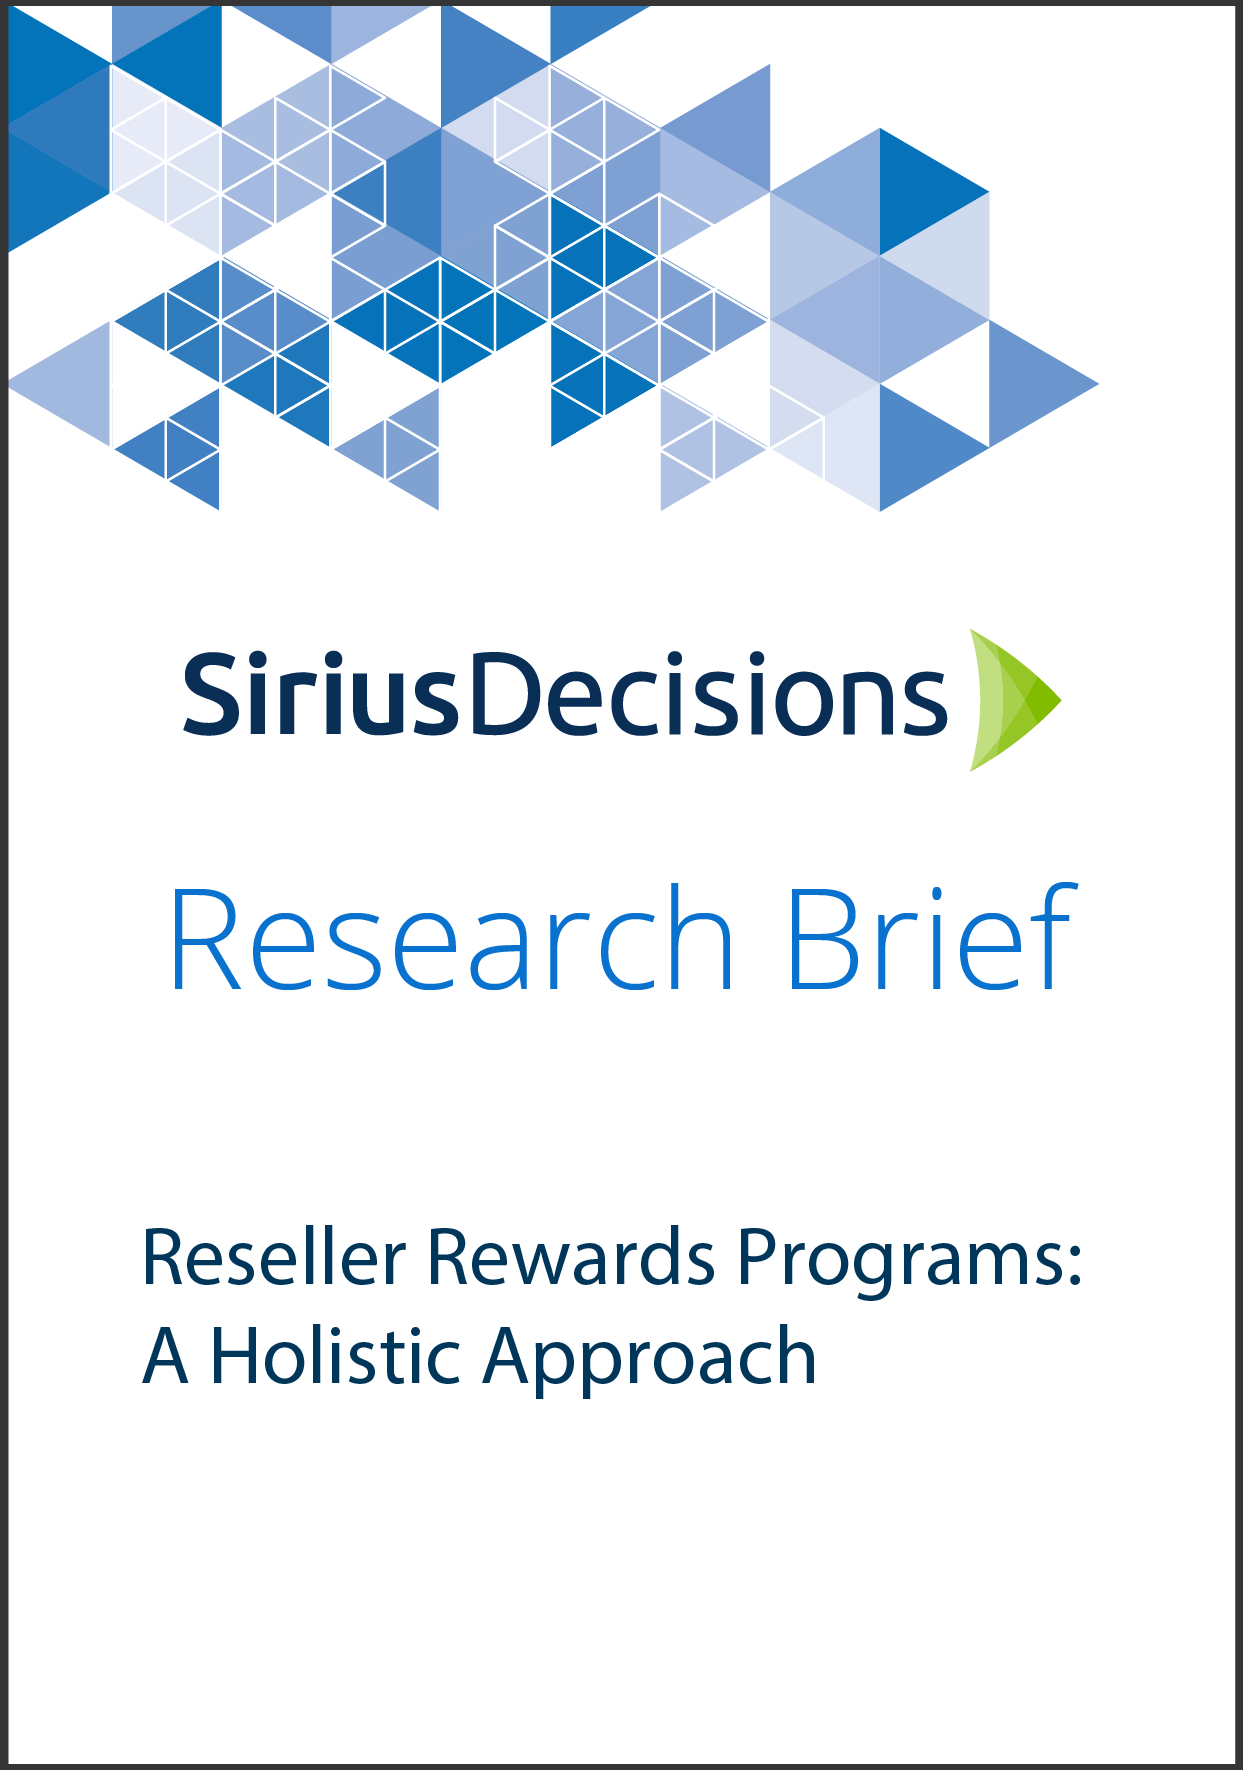 SD Research Brief 2@3x.png